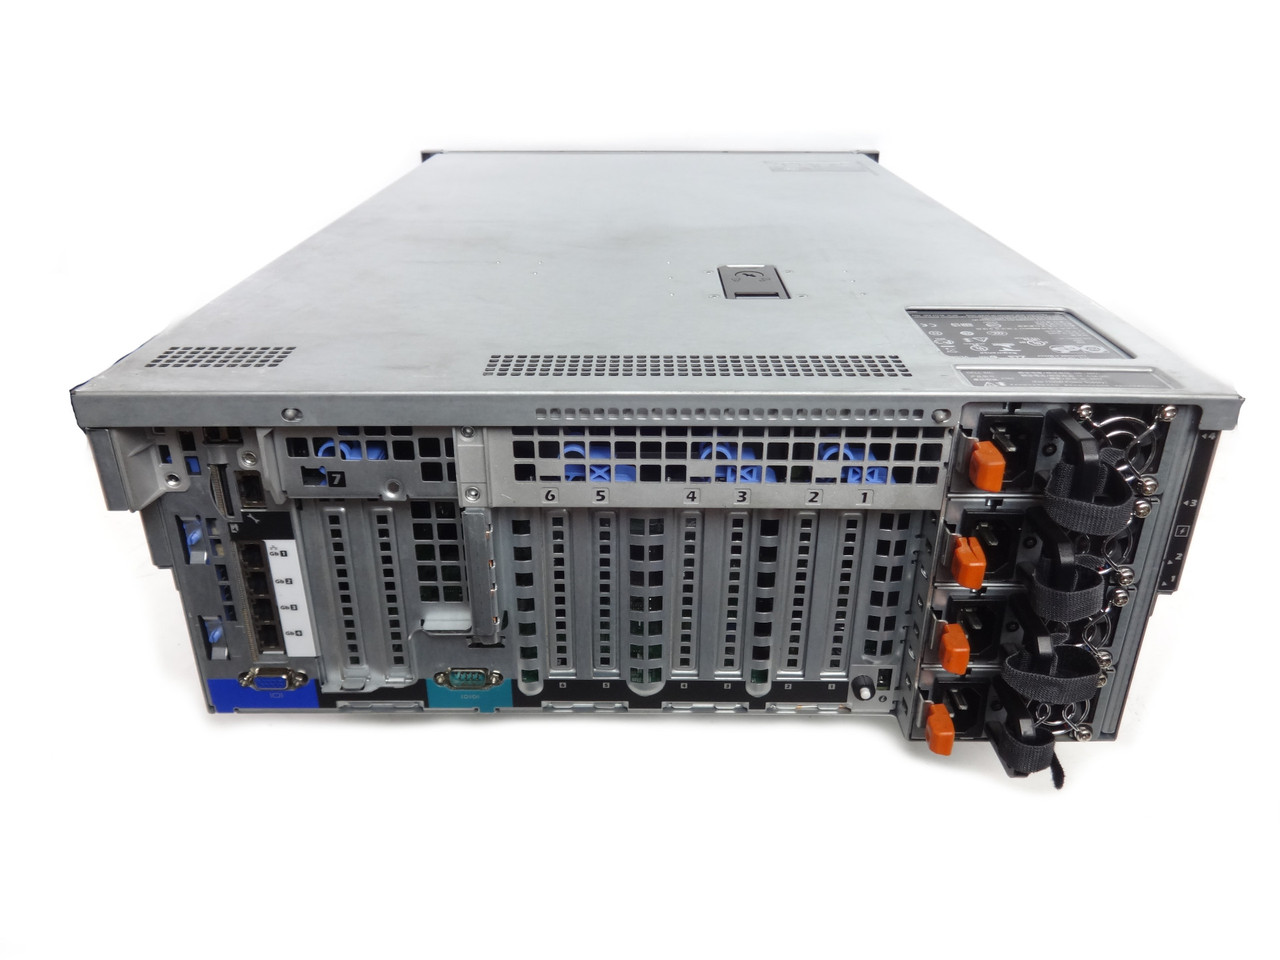 Dell Poweredge R910 Server Build to Order